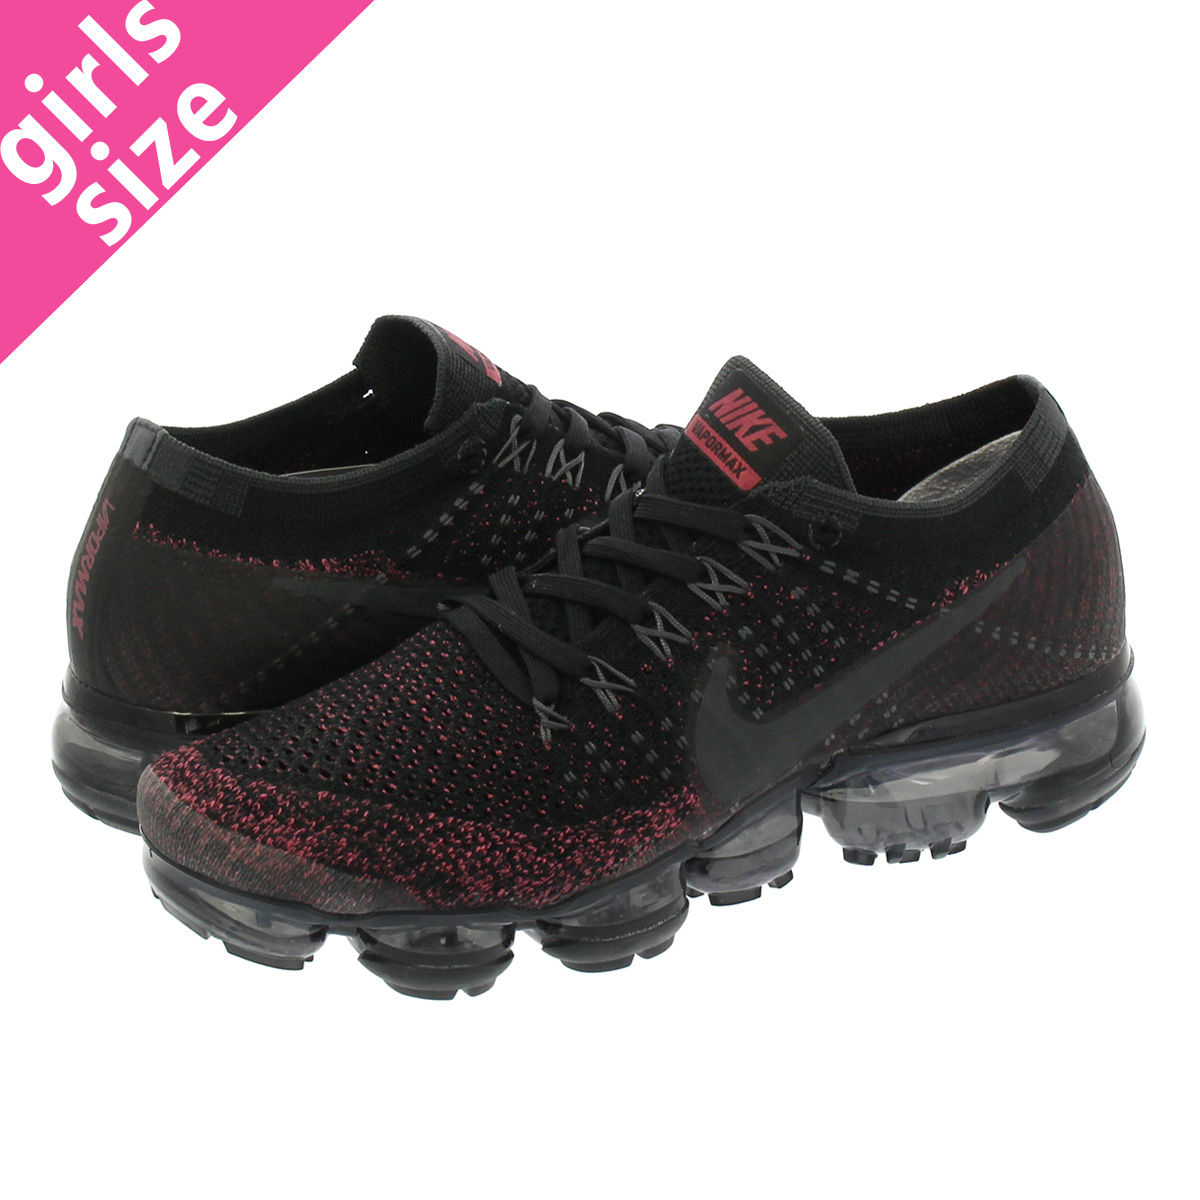 low priced 5f169 6bcef NIKE WMNS AIR VAPORMAX FLYKNIT Nike women vapor max fried food knit  BLACK/ANTHRACITE/VINTAGE WINE 849557-007-l